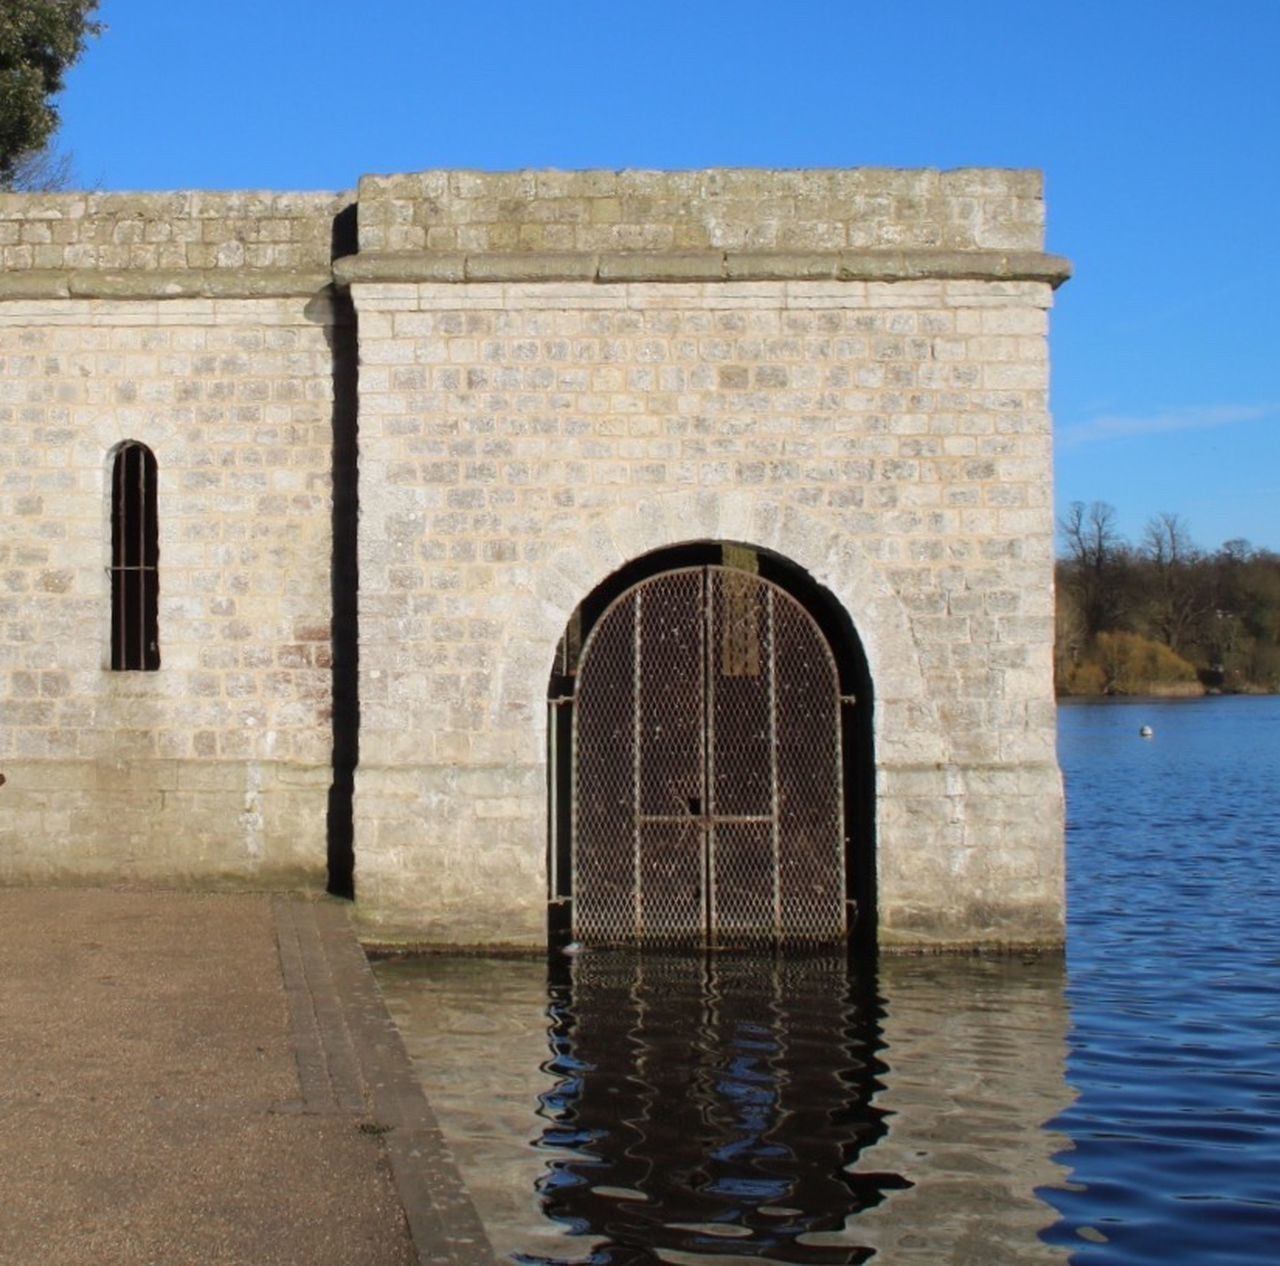 architecture, built structure, water, day, outdoors, history, building exterior, no people, sky